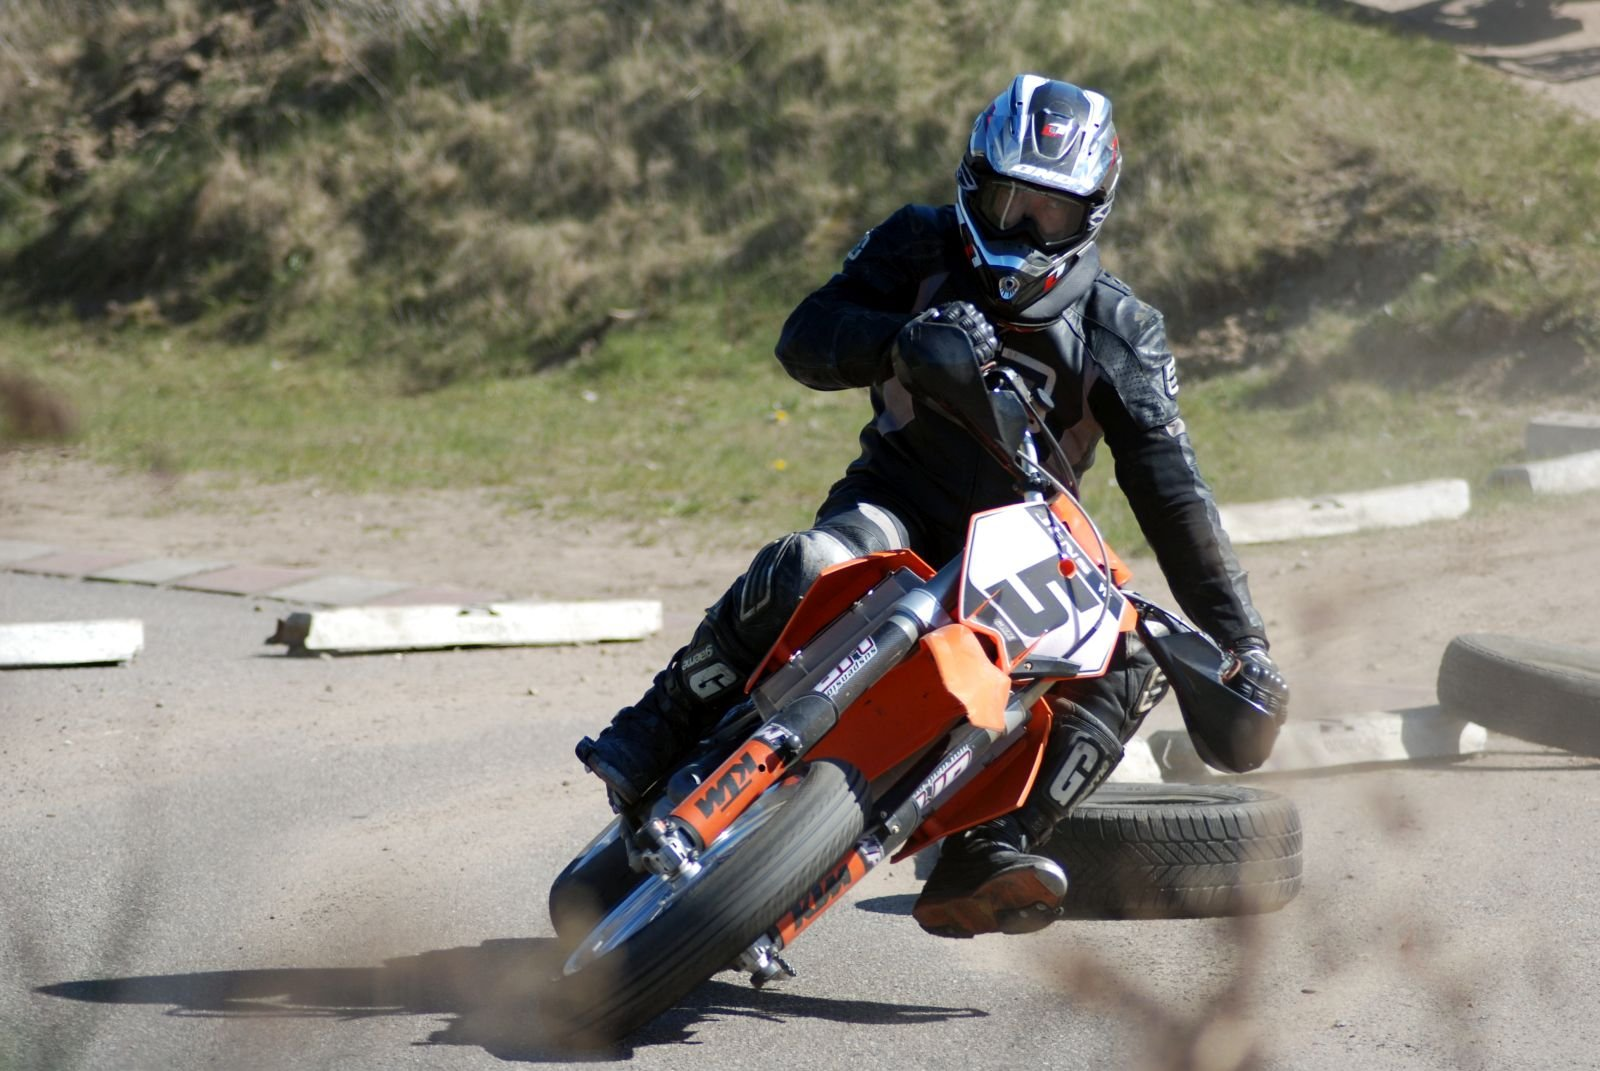 Supermotard_DM_ALS_2009 (30)